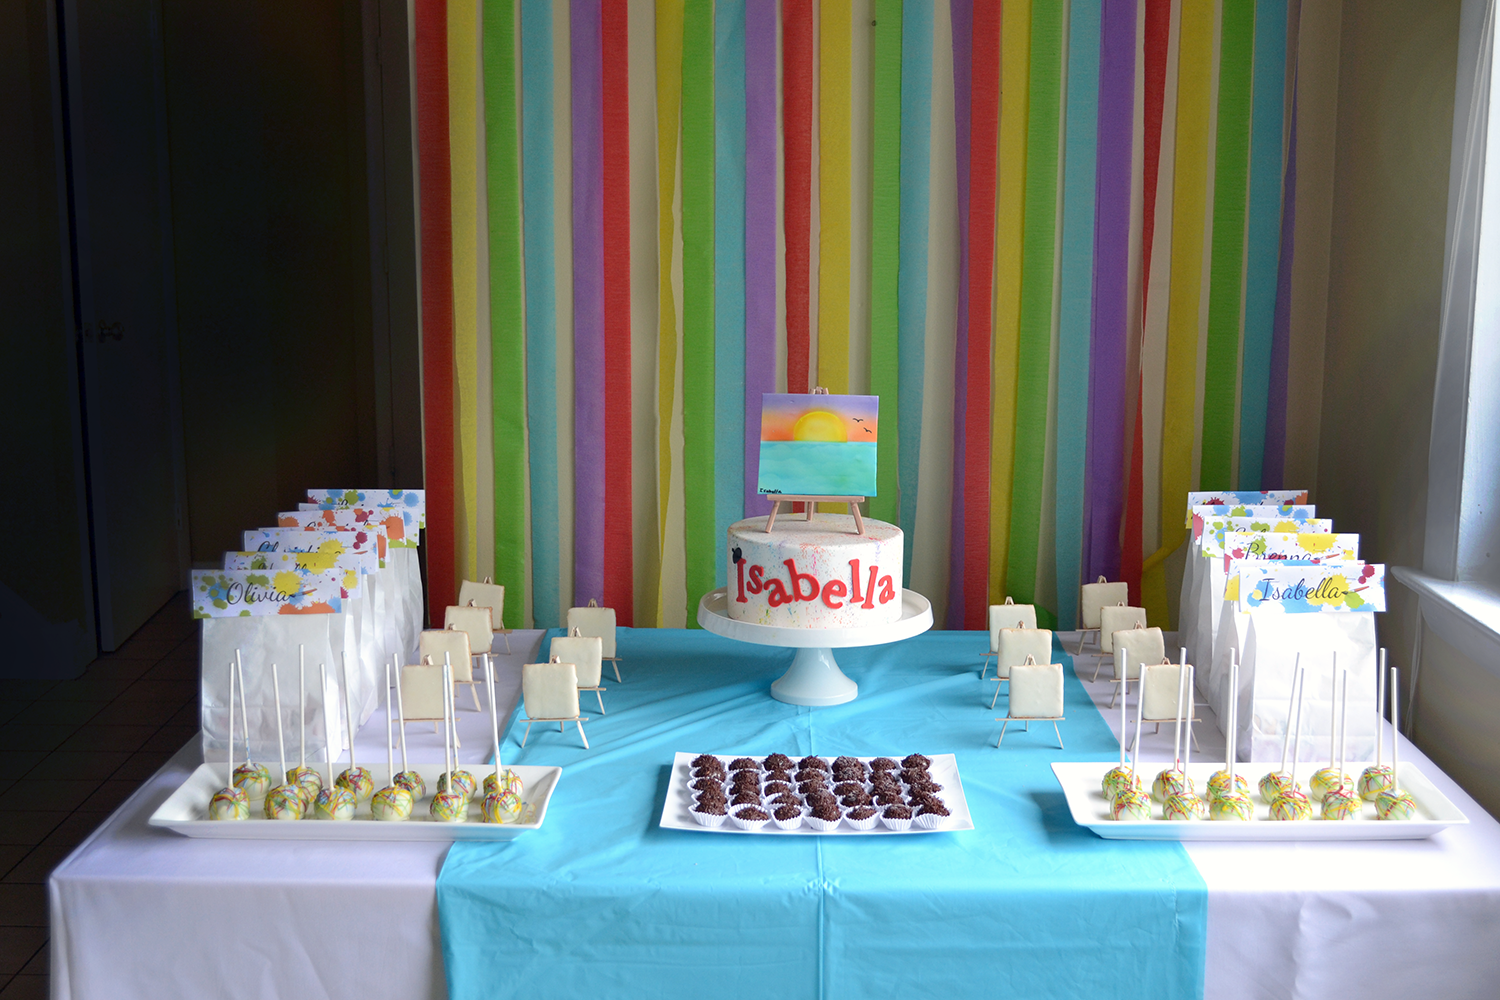 Artist birthday dessert table